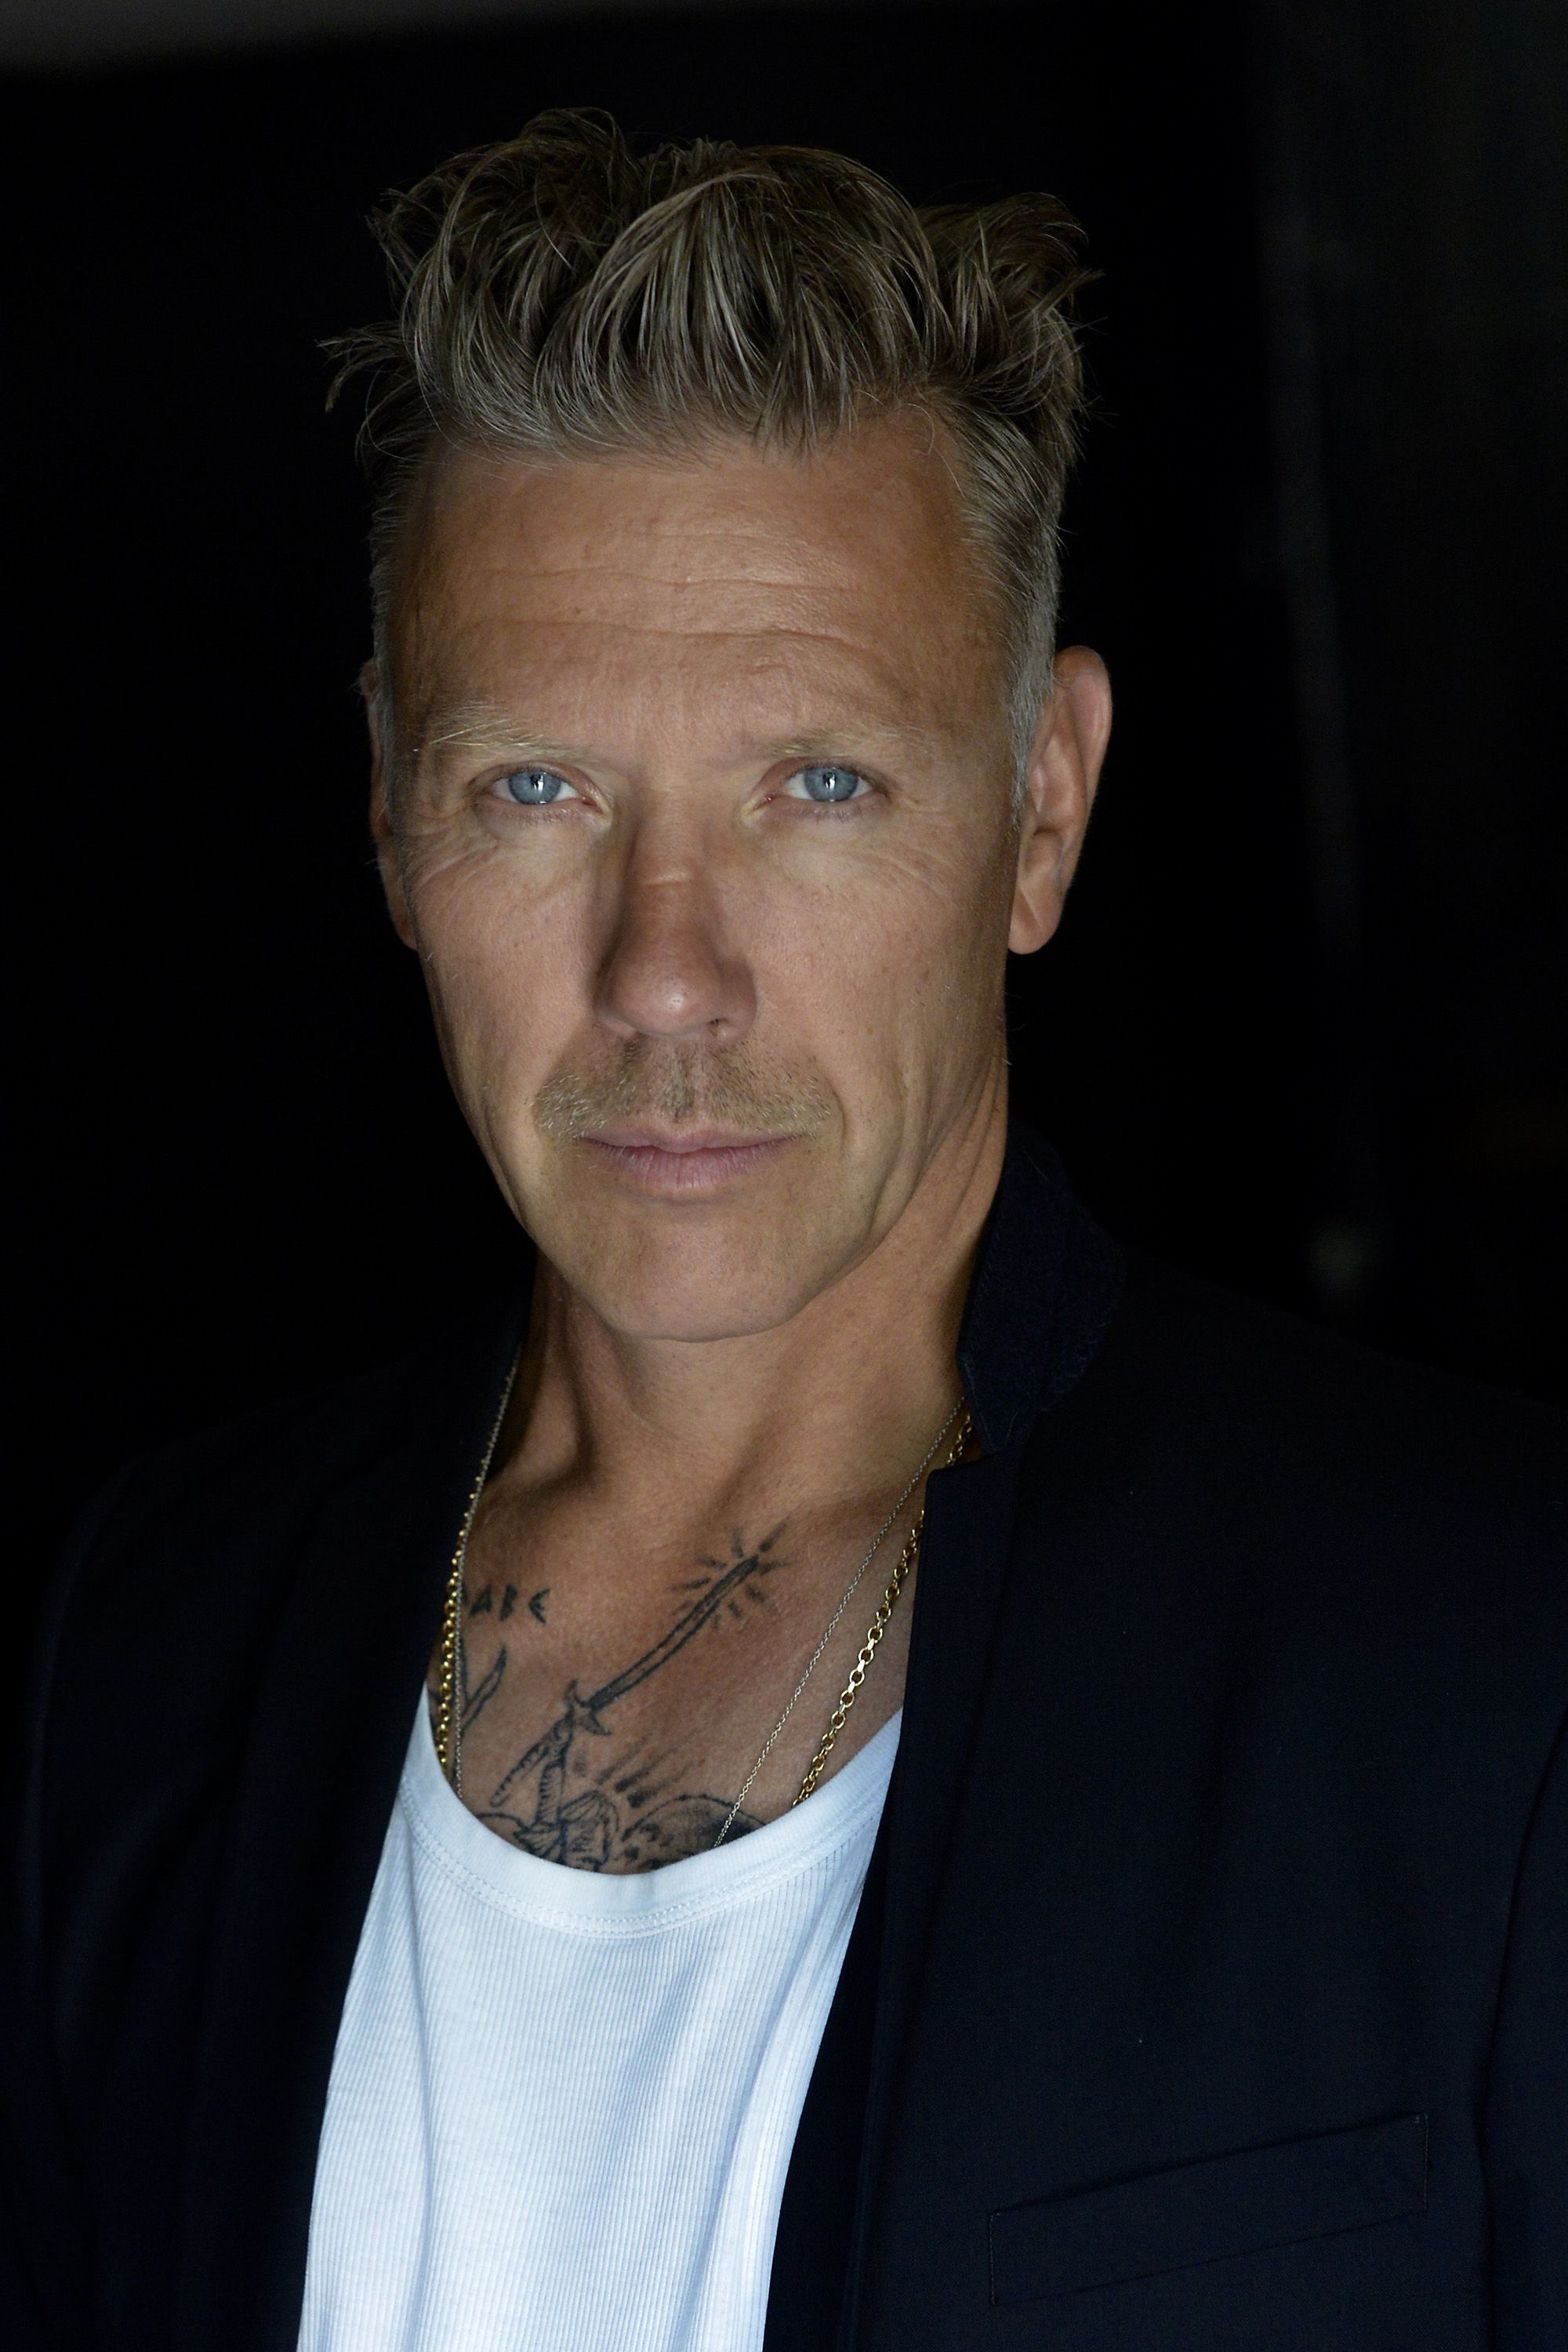 mikael persbrandt facebookmikael persbrandt songs, mikael persbrandt wiki, mikael persbrandt tattoos, mikael persbrandt movies, mikael persbrandt someone you love, mikael persbrandt instagram, mikael persbrandt sanna lundell, mikael persbrandt someone you love lyrics, mikael persbrandt son, mikael persbrandt twitter, mikael persbrandt family, mikael persbrandt podcast, mikael persbrandt art, mikael persbrandt imdb, mikael persbrandt facebook, mikael persbrandt i am, mikael persbrandt tatueringar, mikael persbrandt barn, mikael persbrandt privat, mikael persbrandt beck